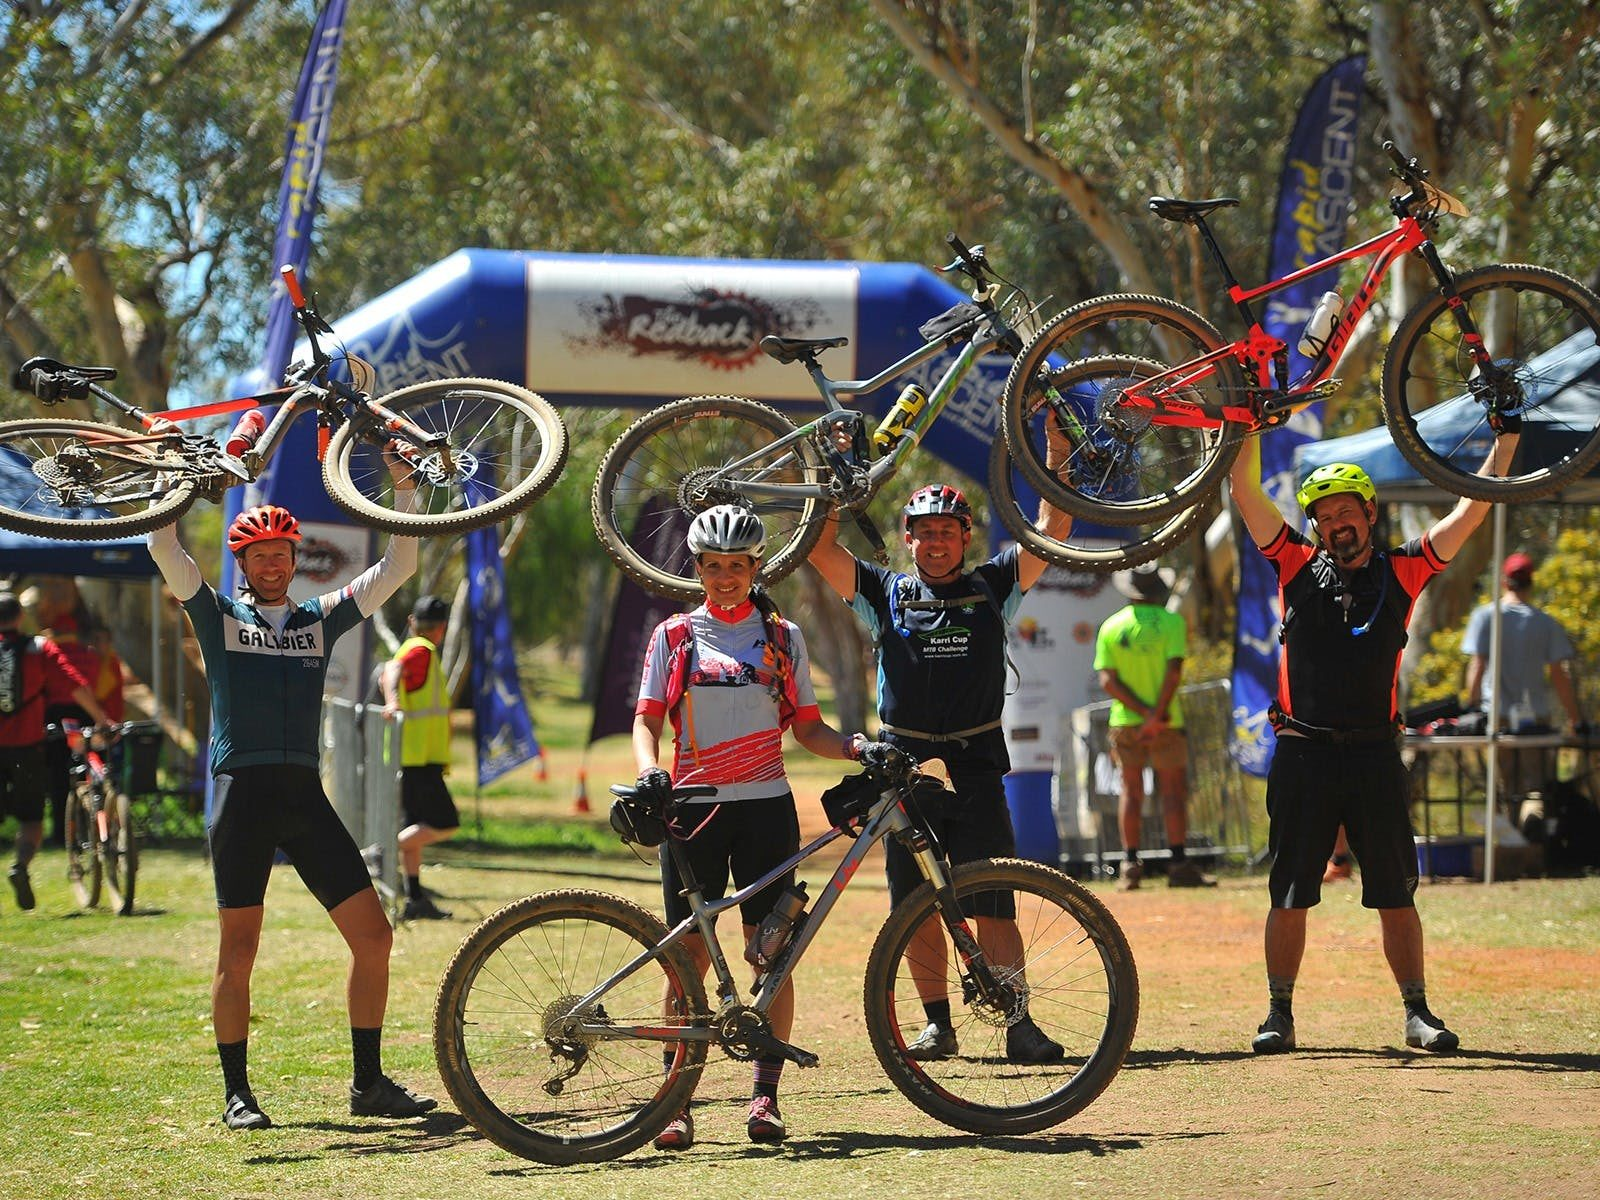 Riders at the finish line